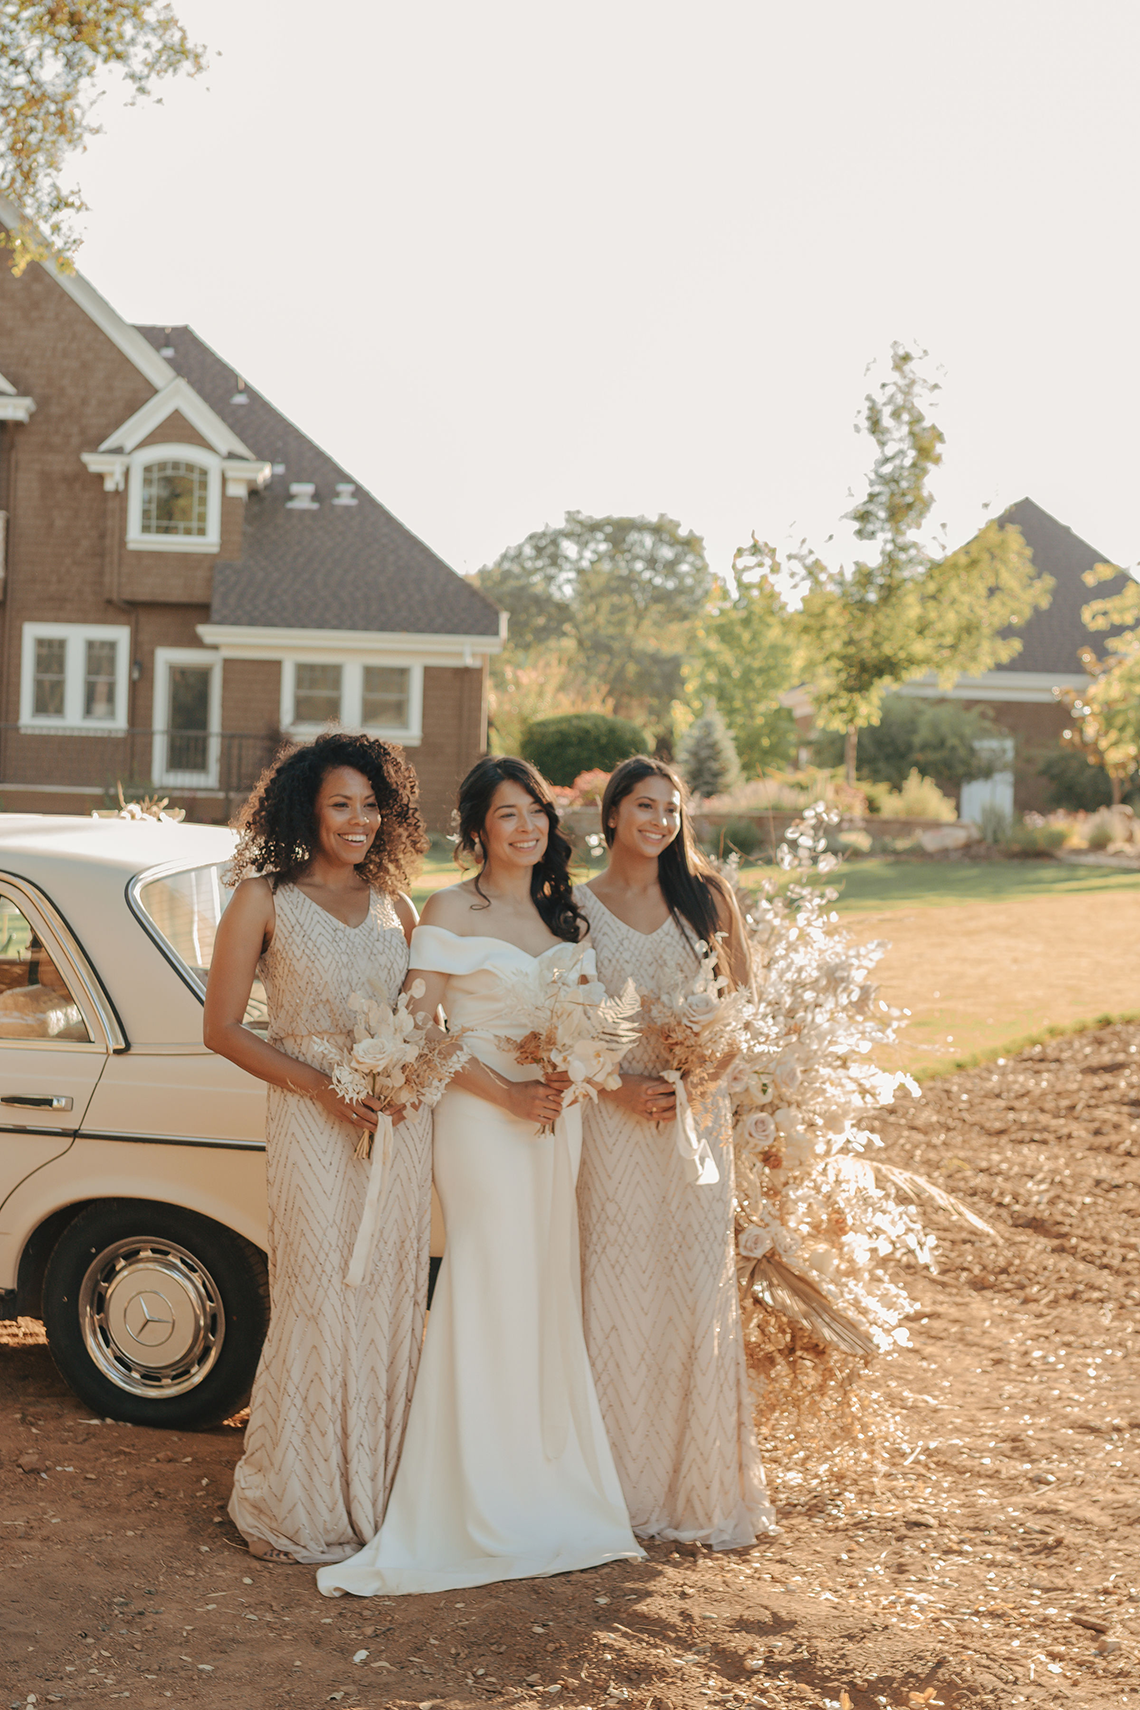 Autumn Neutral-toned Wedding Inspiration – Carly Peterson Creative 26